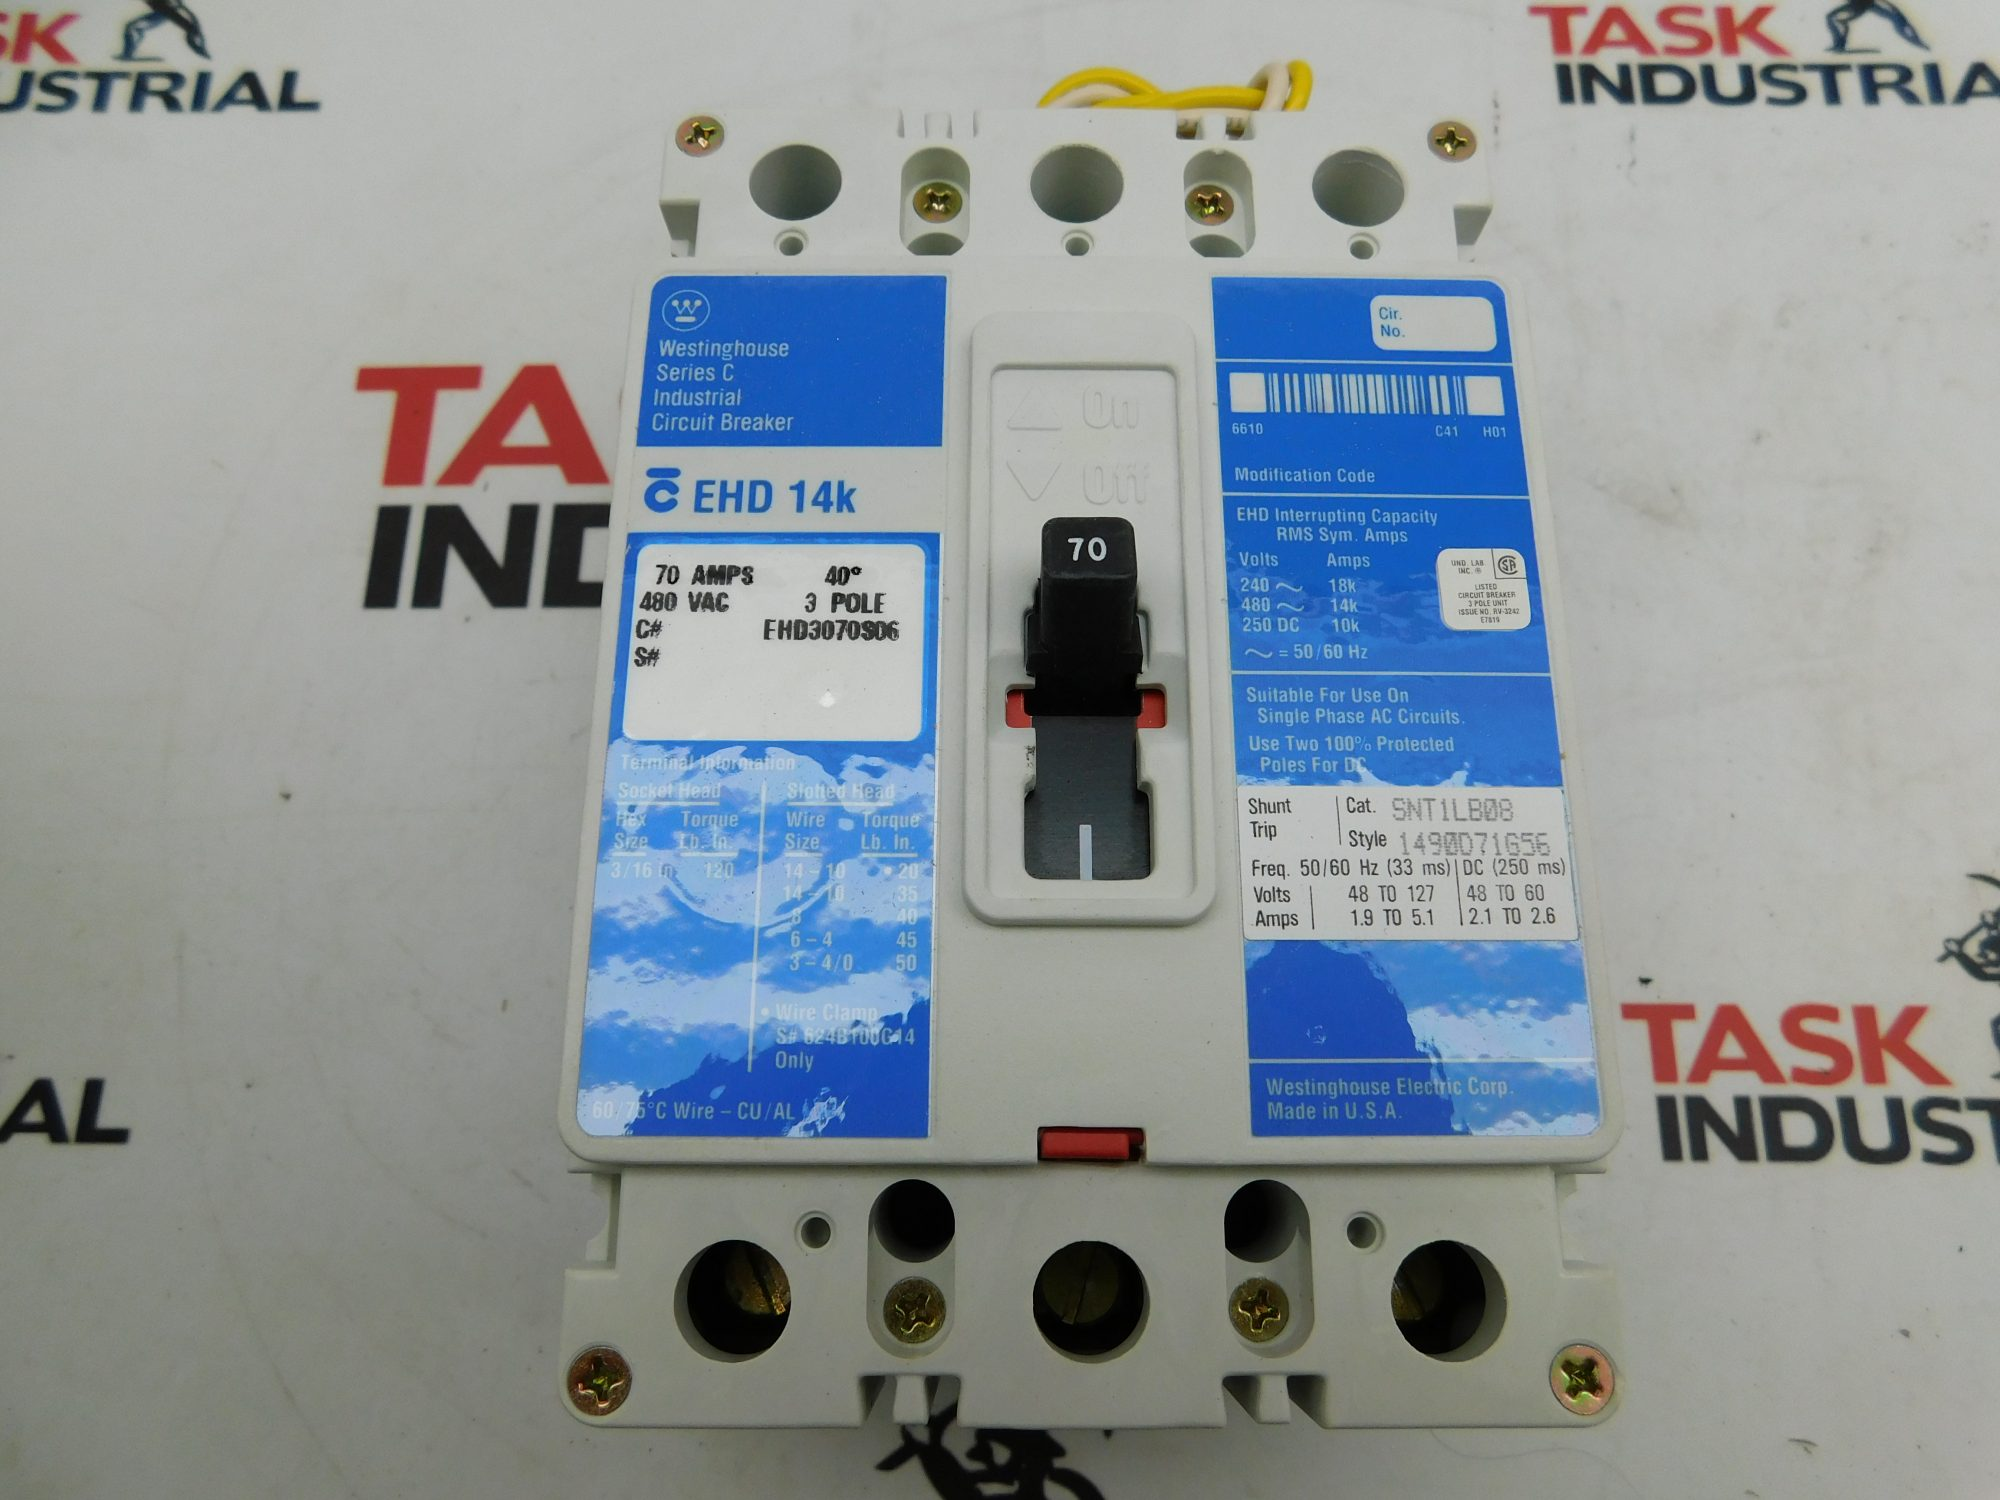 Westinghouse CAT No. EHD3070S06 70AMP 480VAC 3 Pole Industrial Circuit Breaker